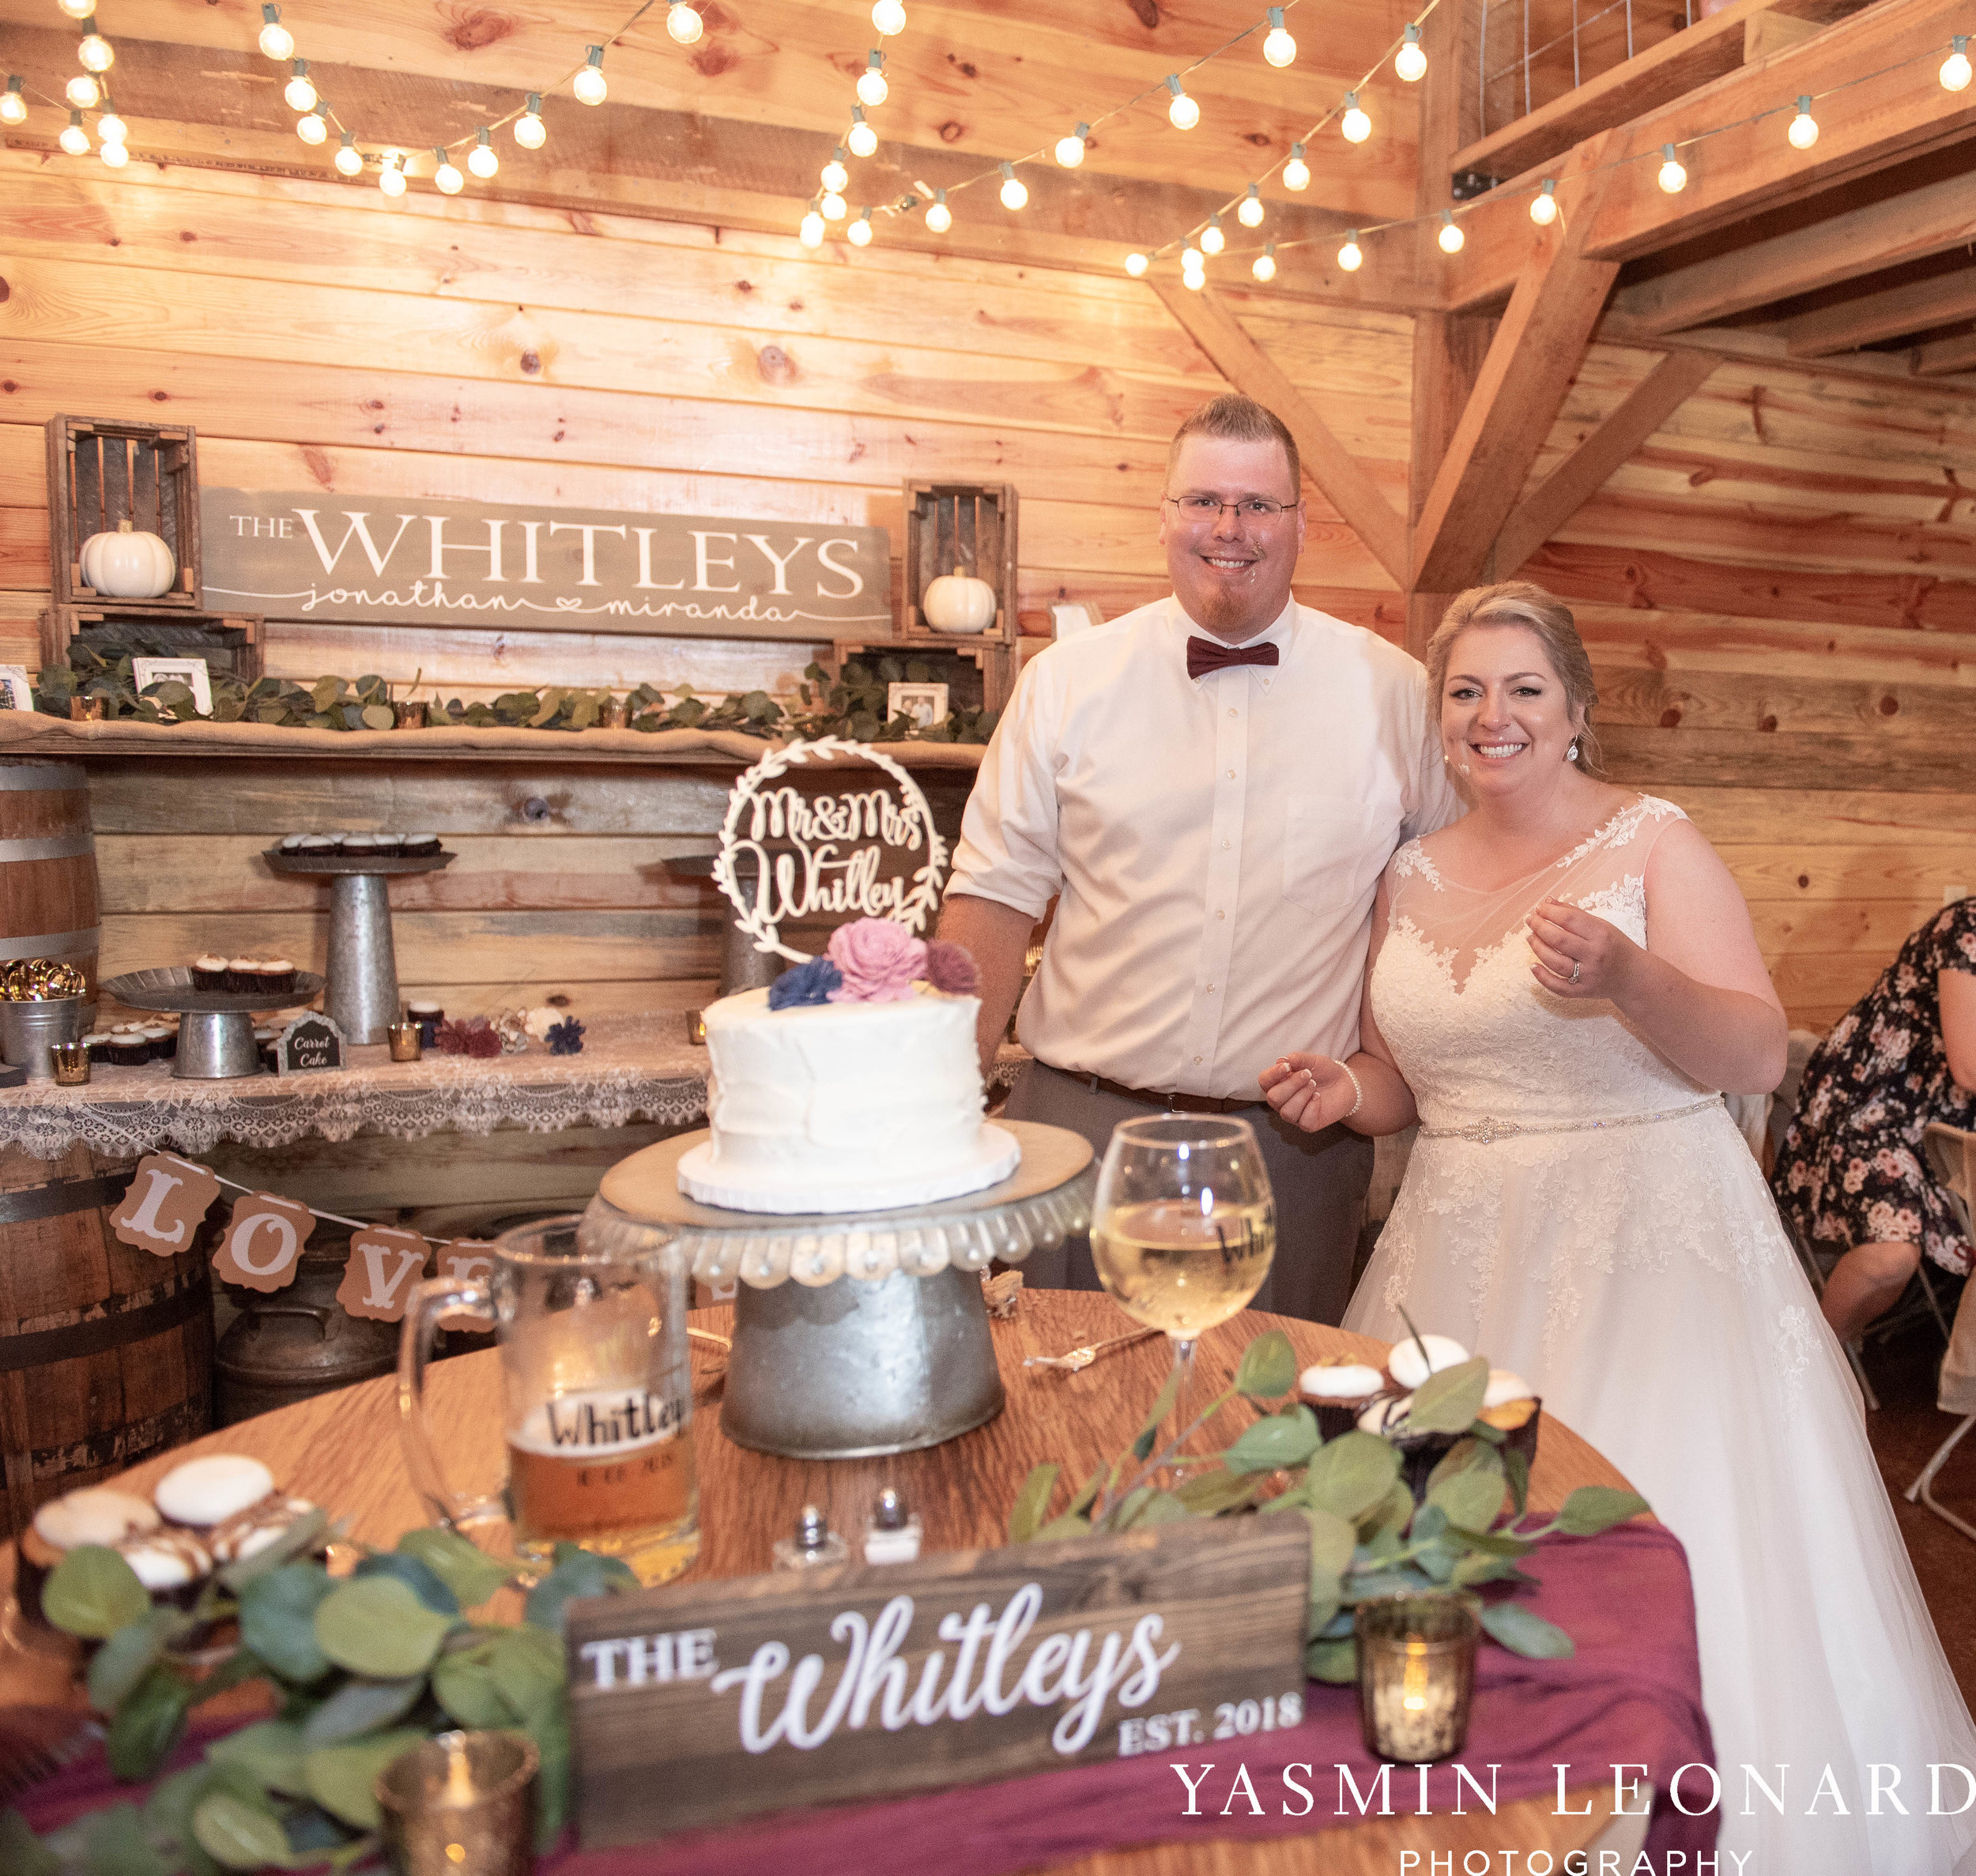 Danner Farms - NC Wedding Venues - NC Barns - Statesville NC - NC Wedding Photographer - High Point Wedding Photographer - Yasmin Leonard Photography-73.jpg